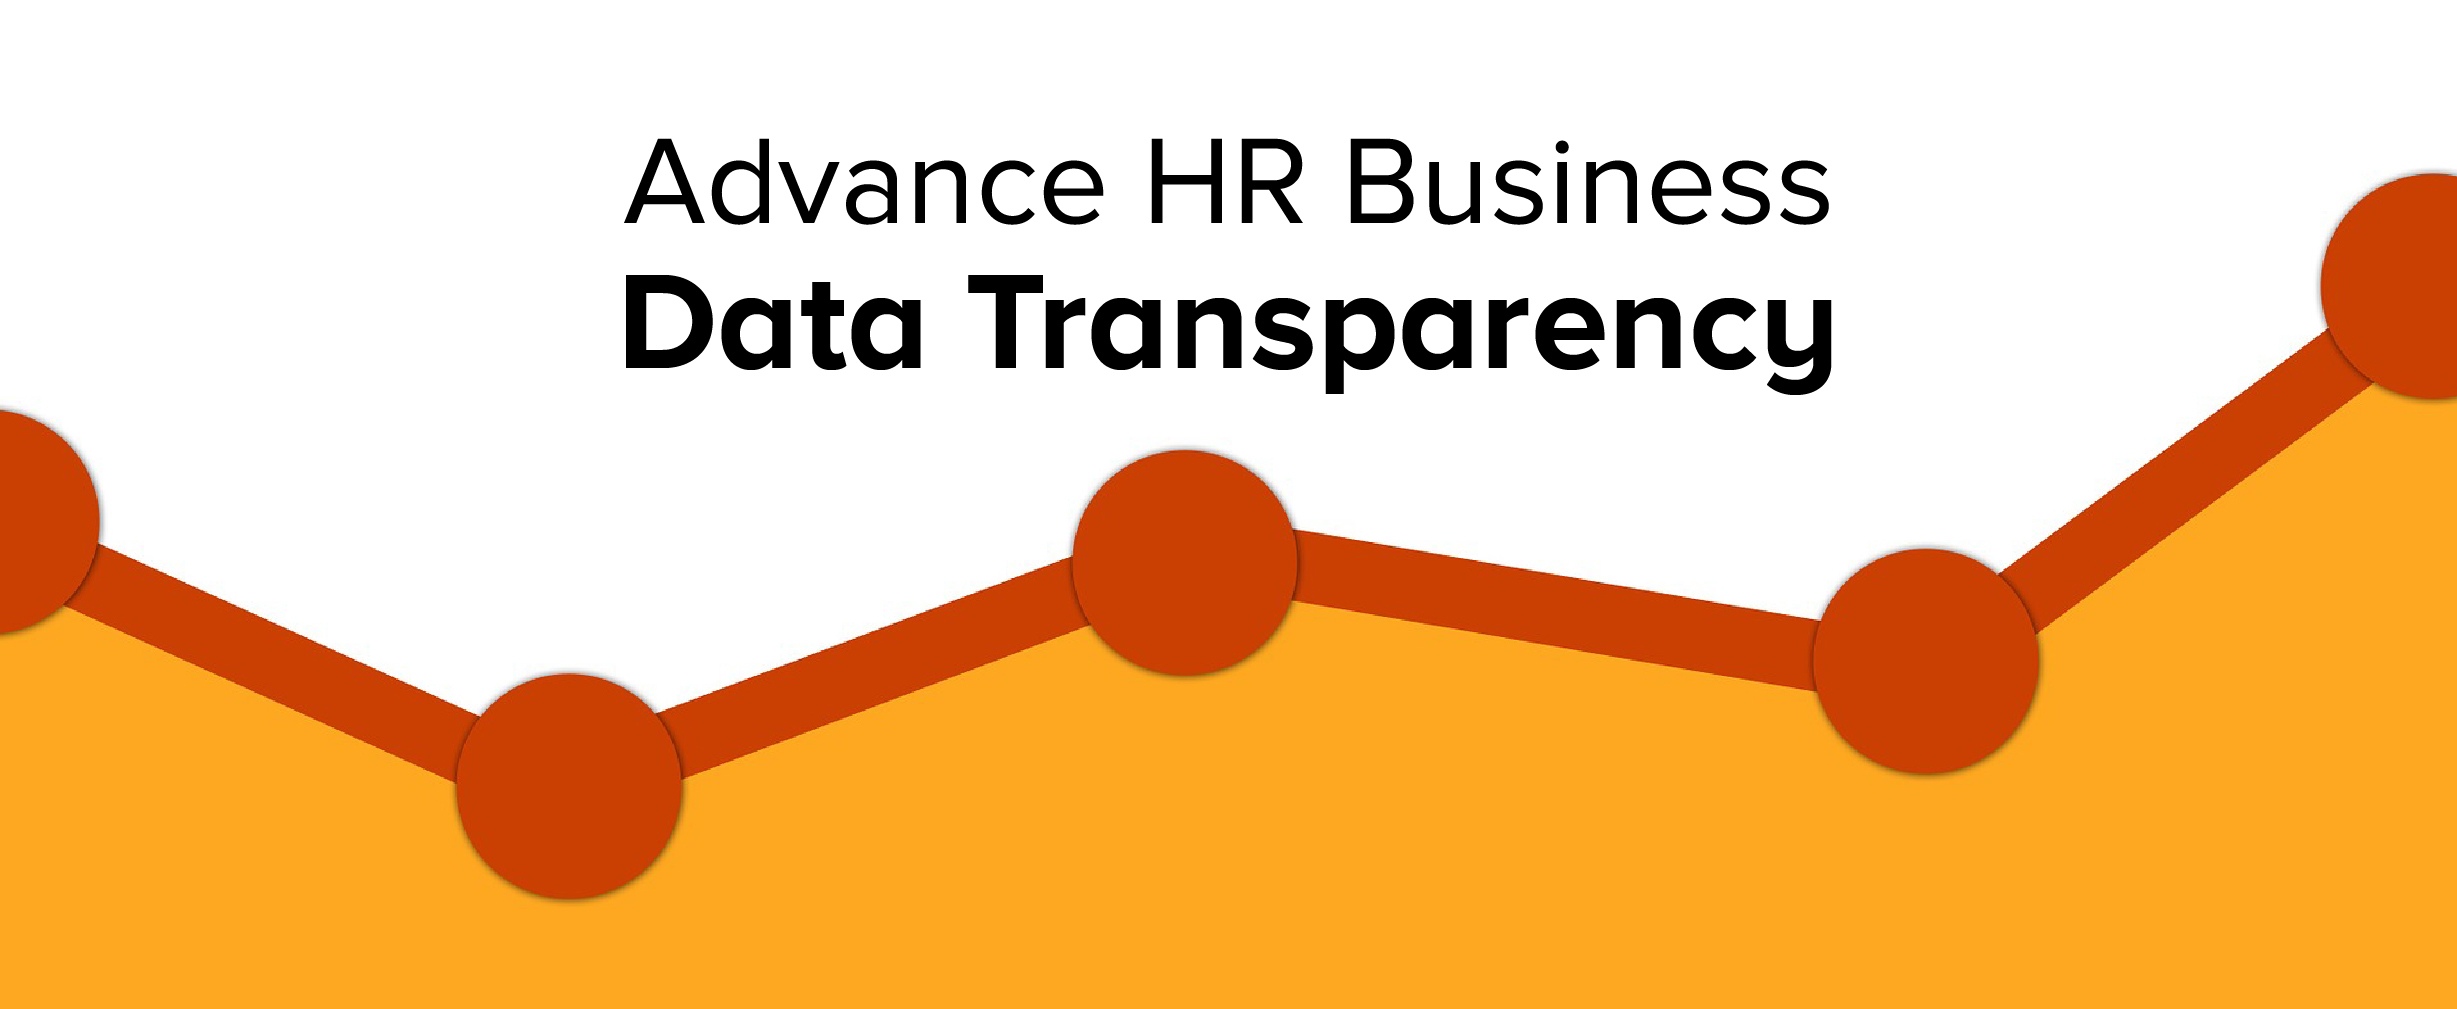 Tear Down the Walls – and Advance HR Business Data Transparency